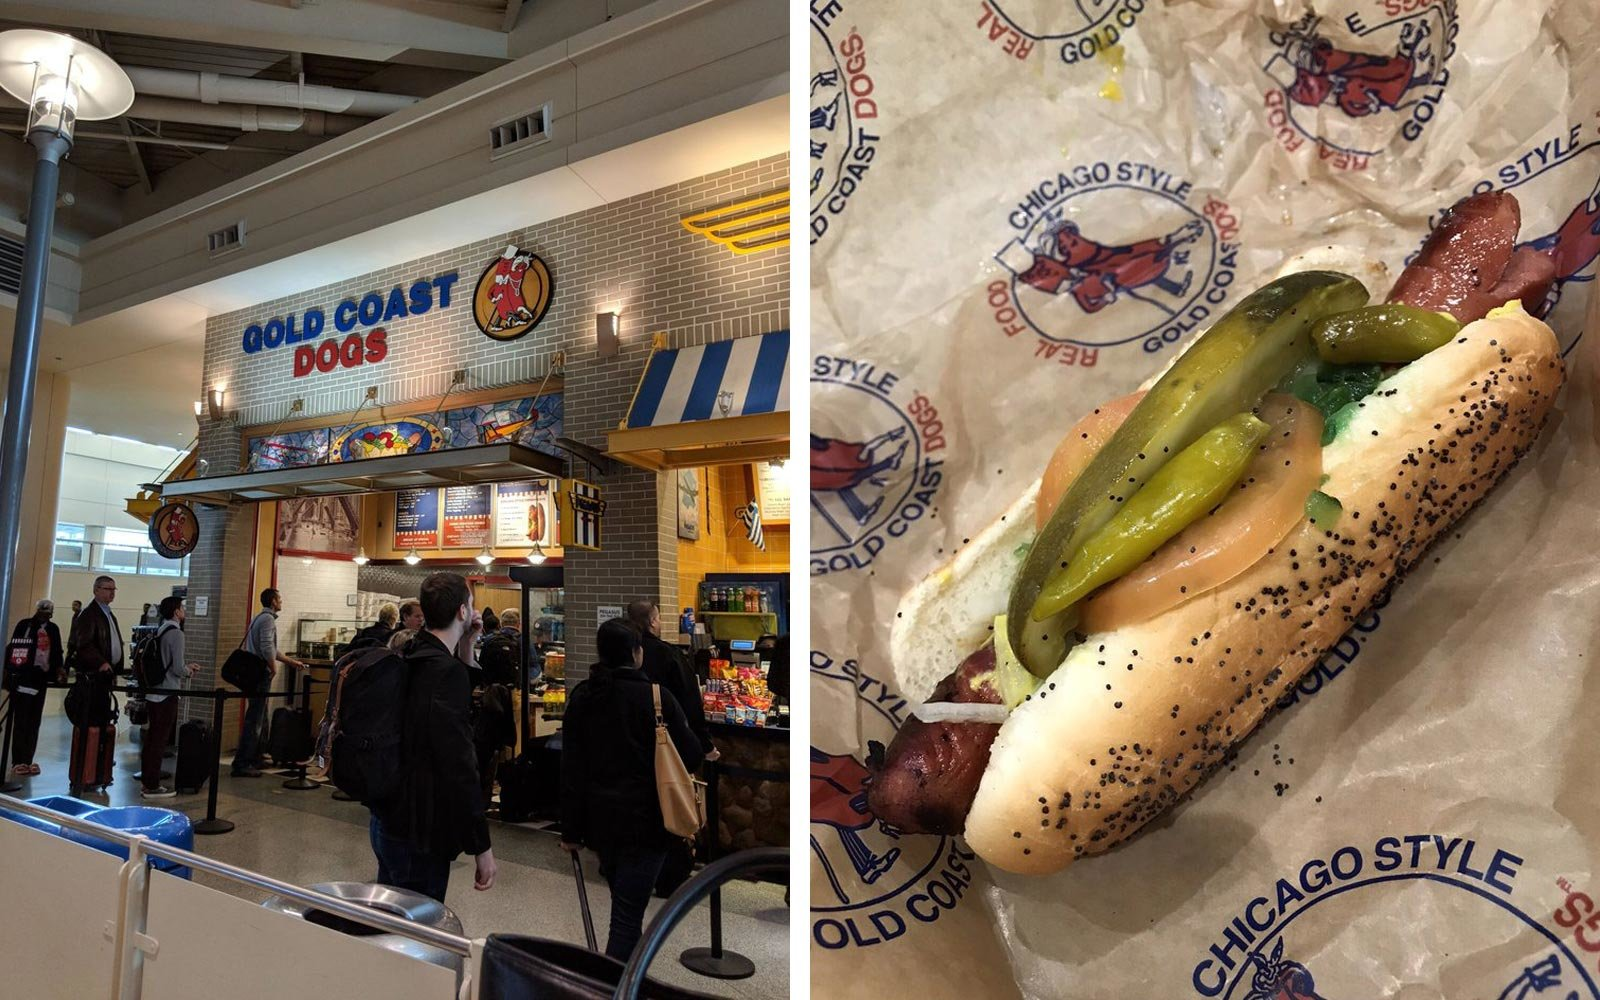 Gold Coast Dogs, Midway International Airport, Chicago